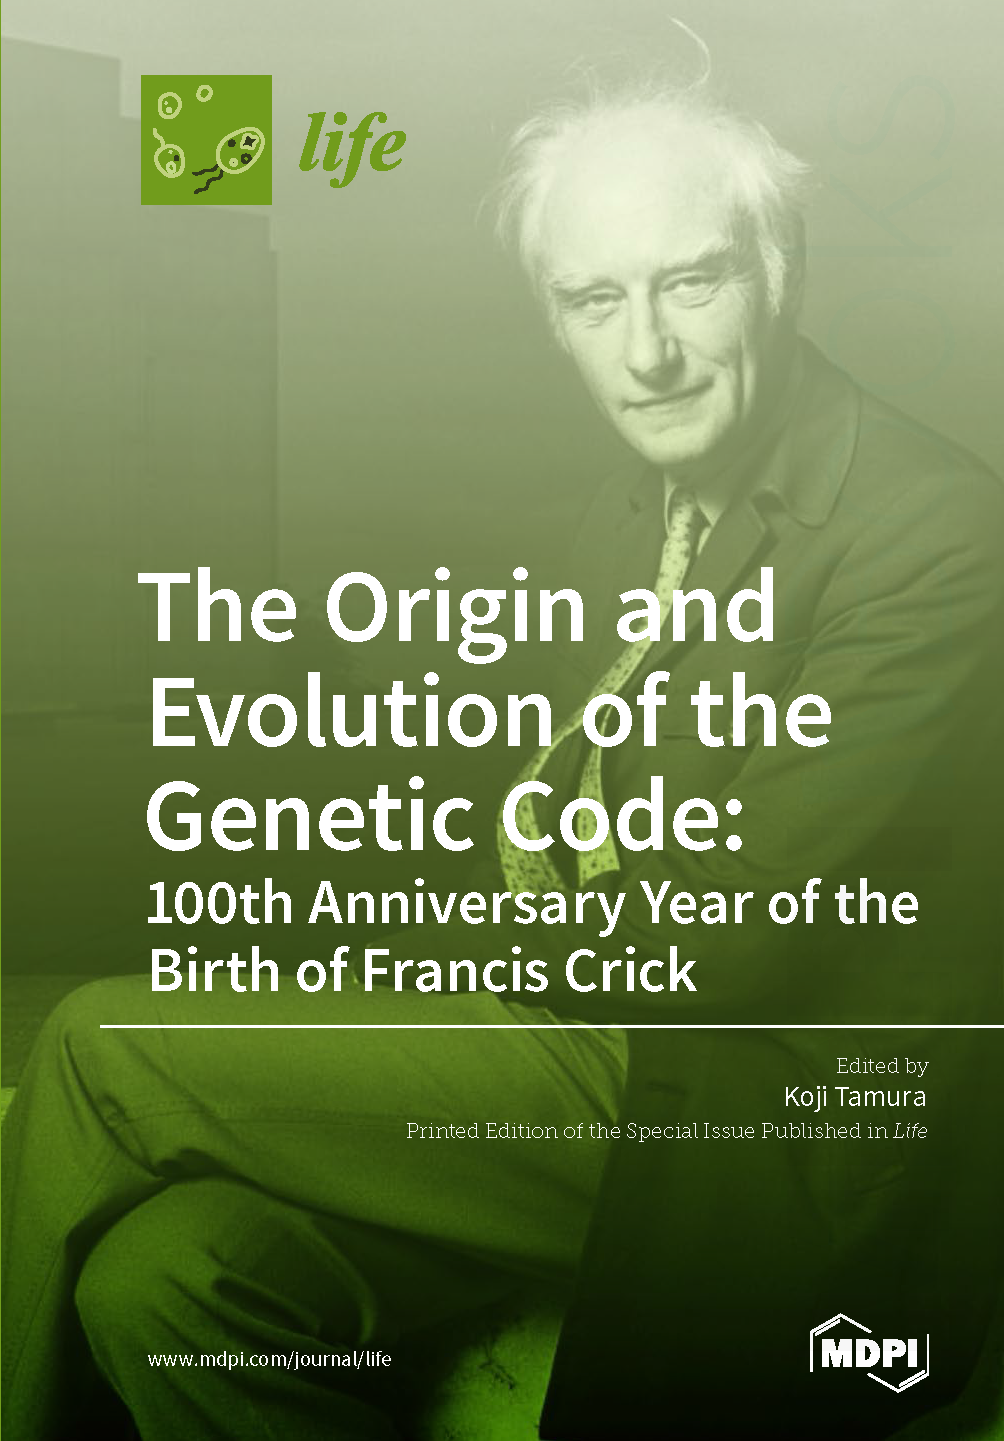 The Origin and Evolution of the Genetic Code: 100th Anniversary Year of the Birth of Francis Crick